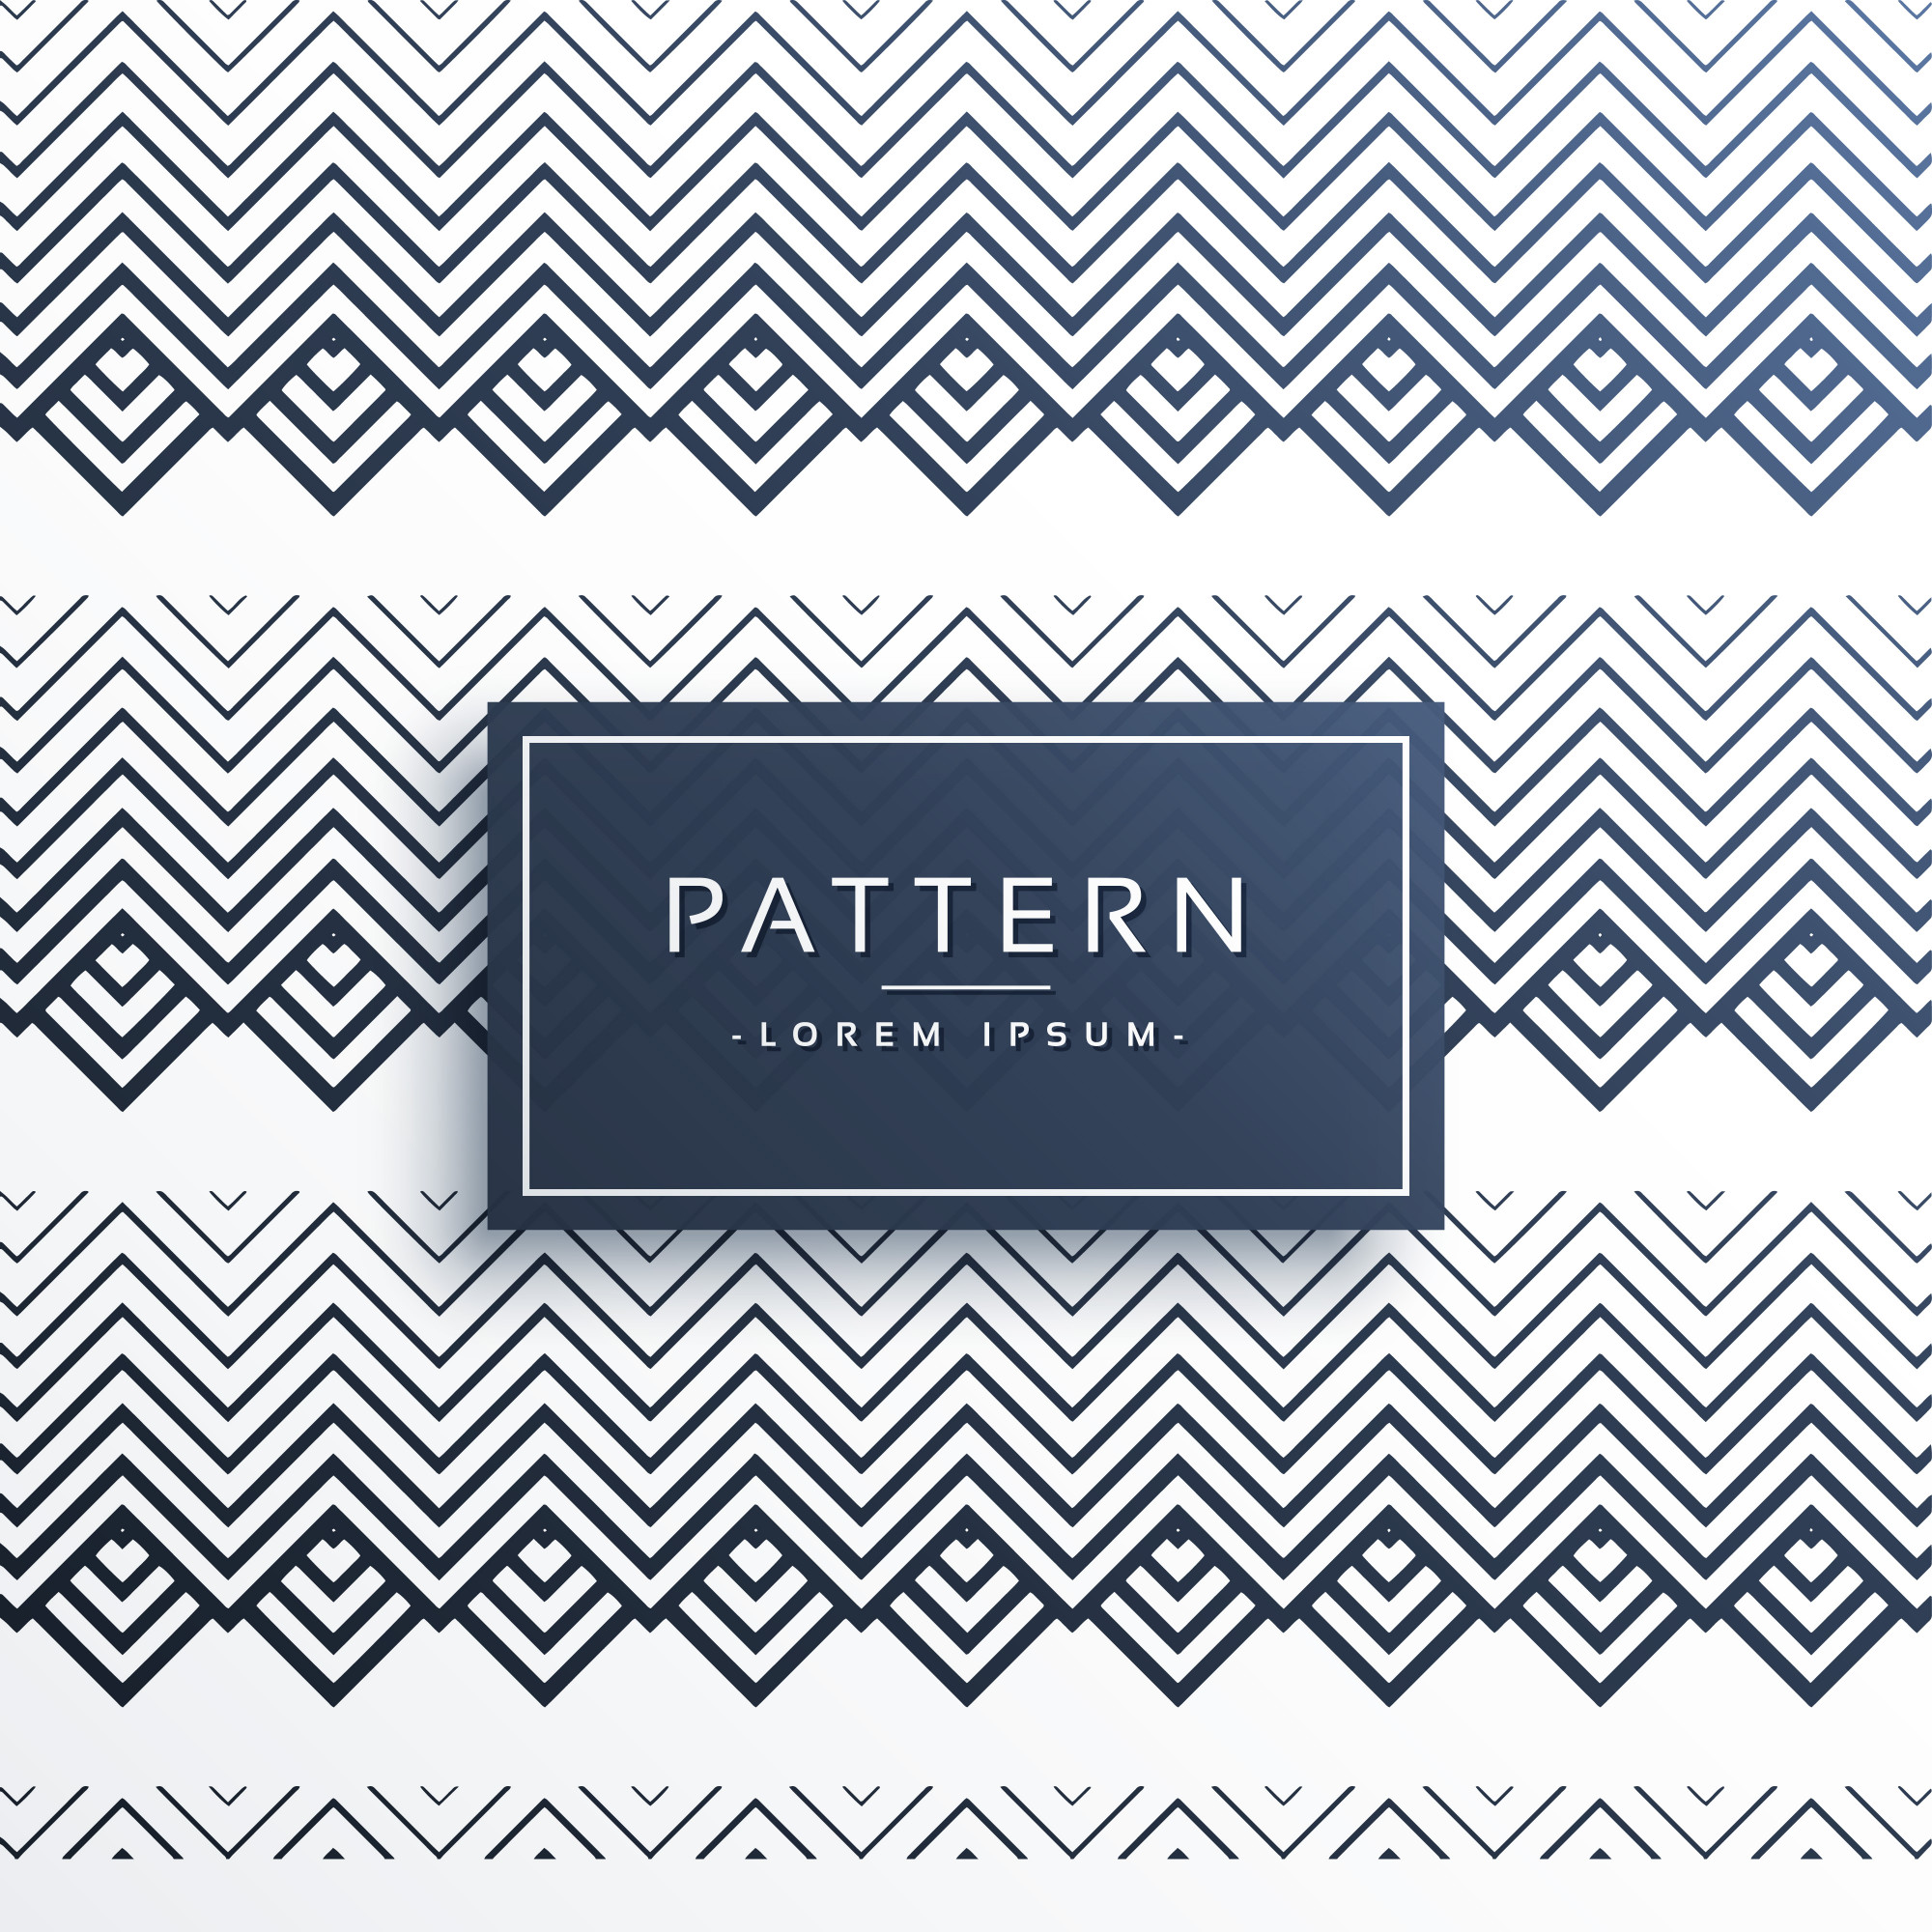 Abstract zigzag aztec style pattern